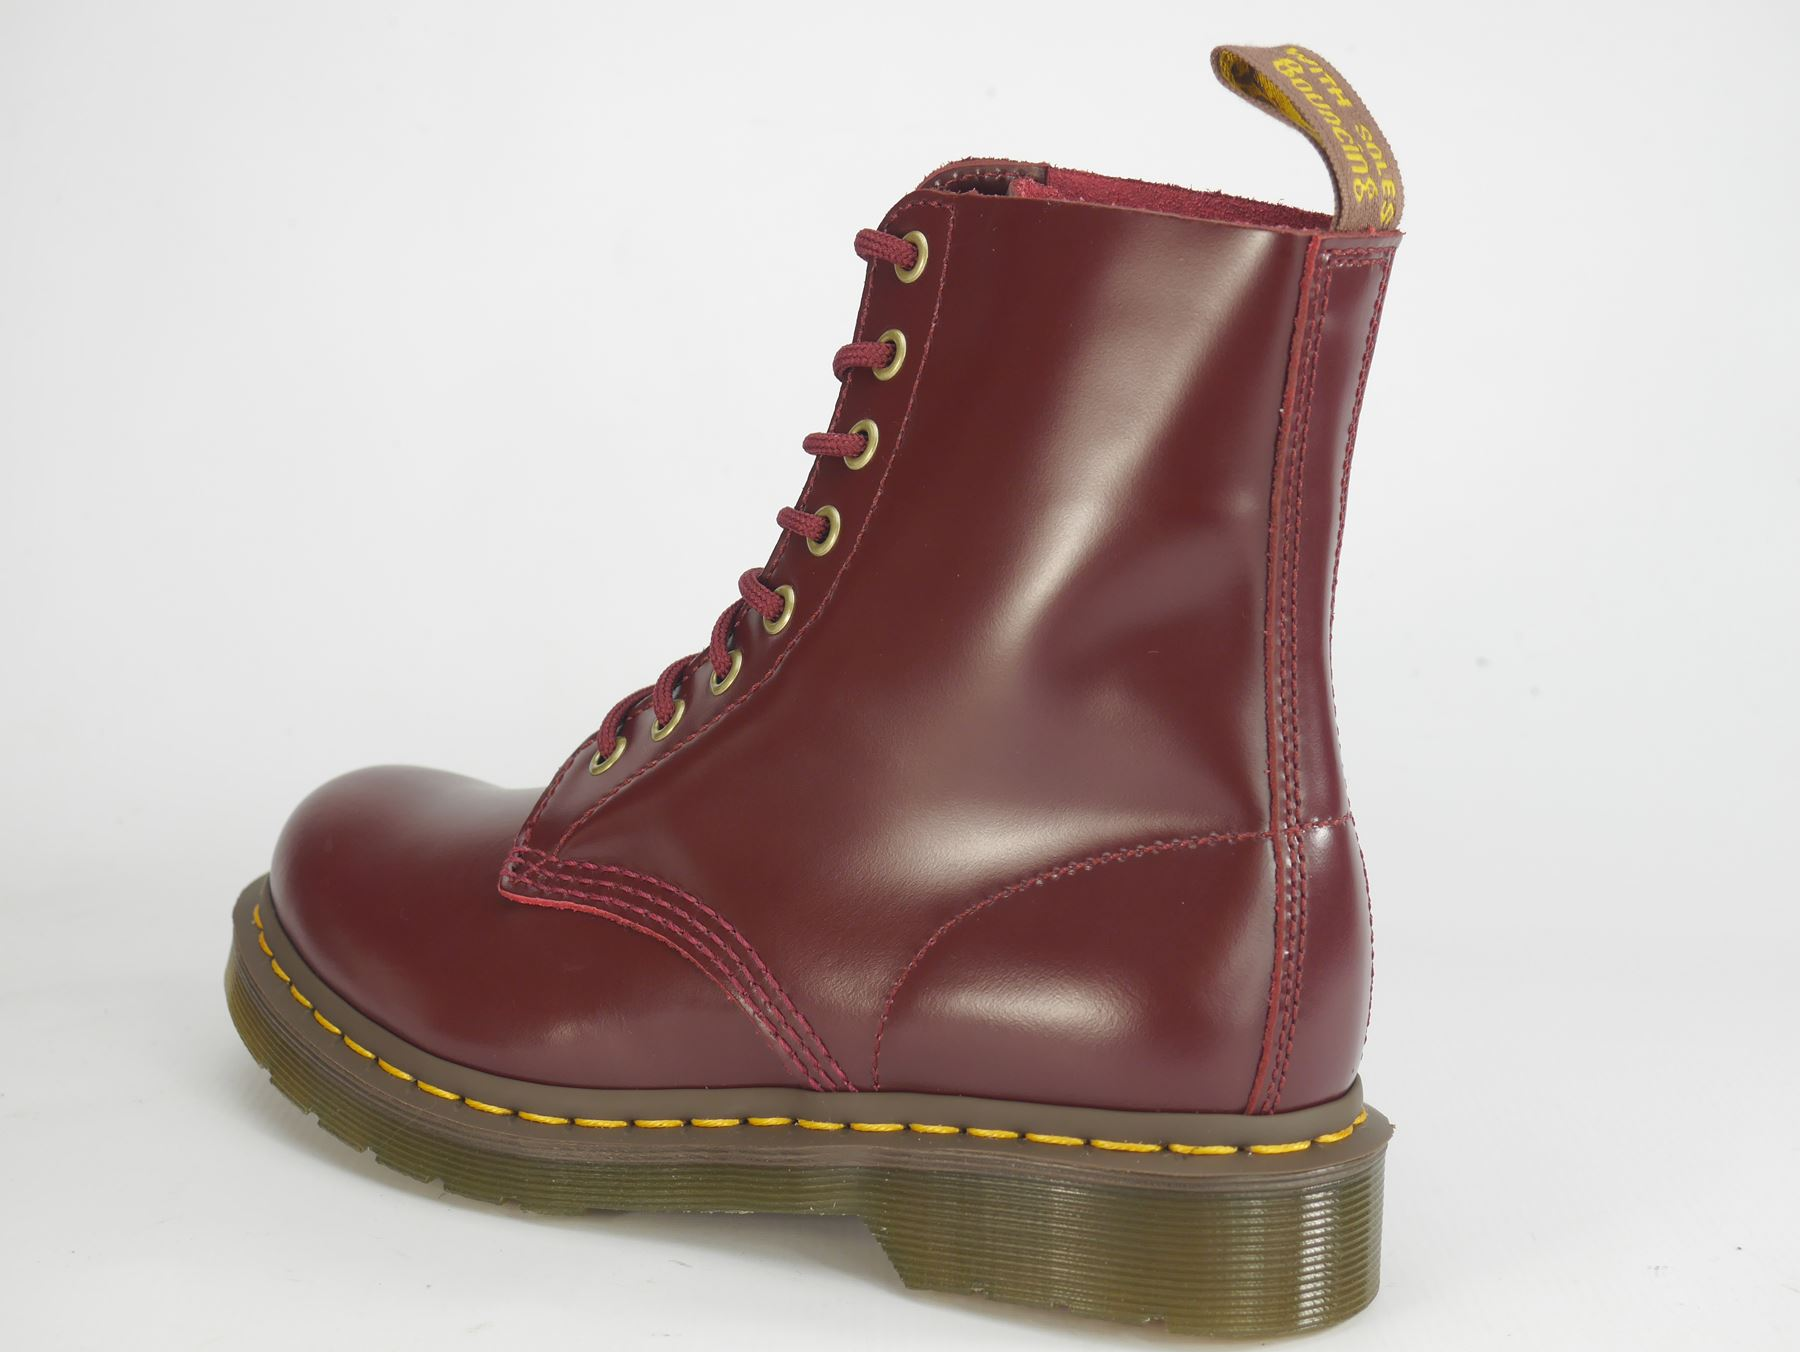 Dr Martens Pascal 8 Eye 1460 Brown Oxblood Lace Up Ladies Boots  f3469d2e0